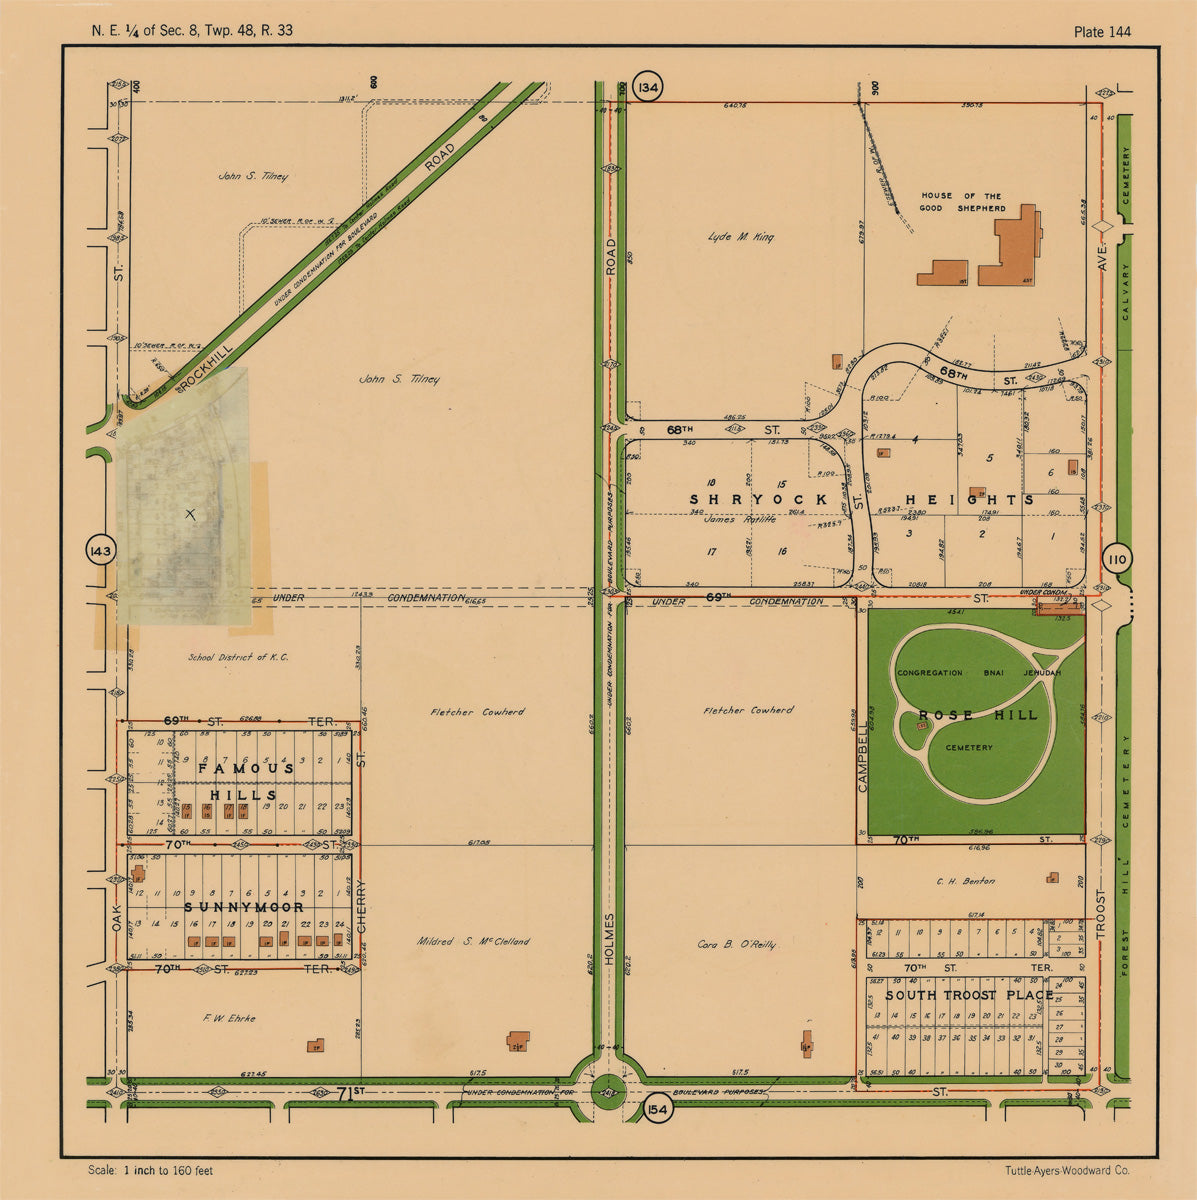 Kansas City 1925 Neighborhood Map - Plate #144 68th-71st Oak-Troost